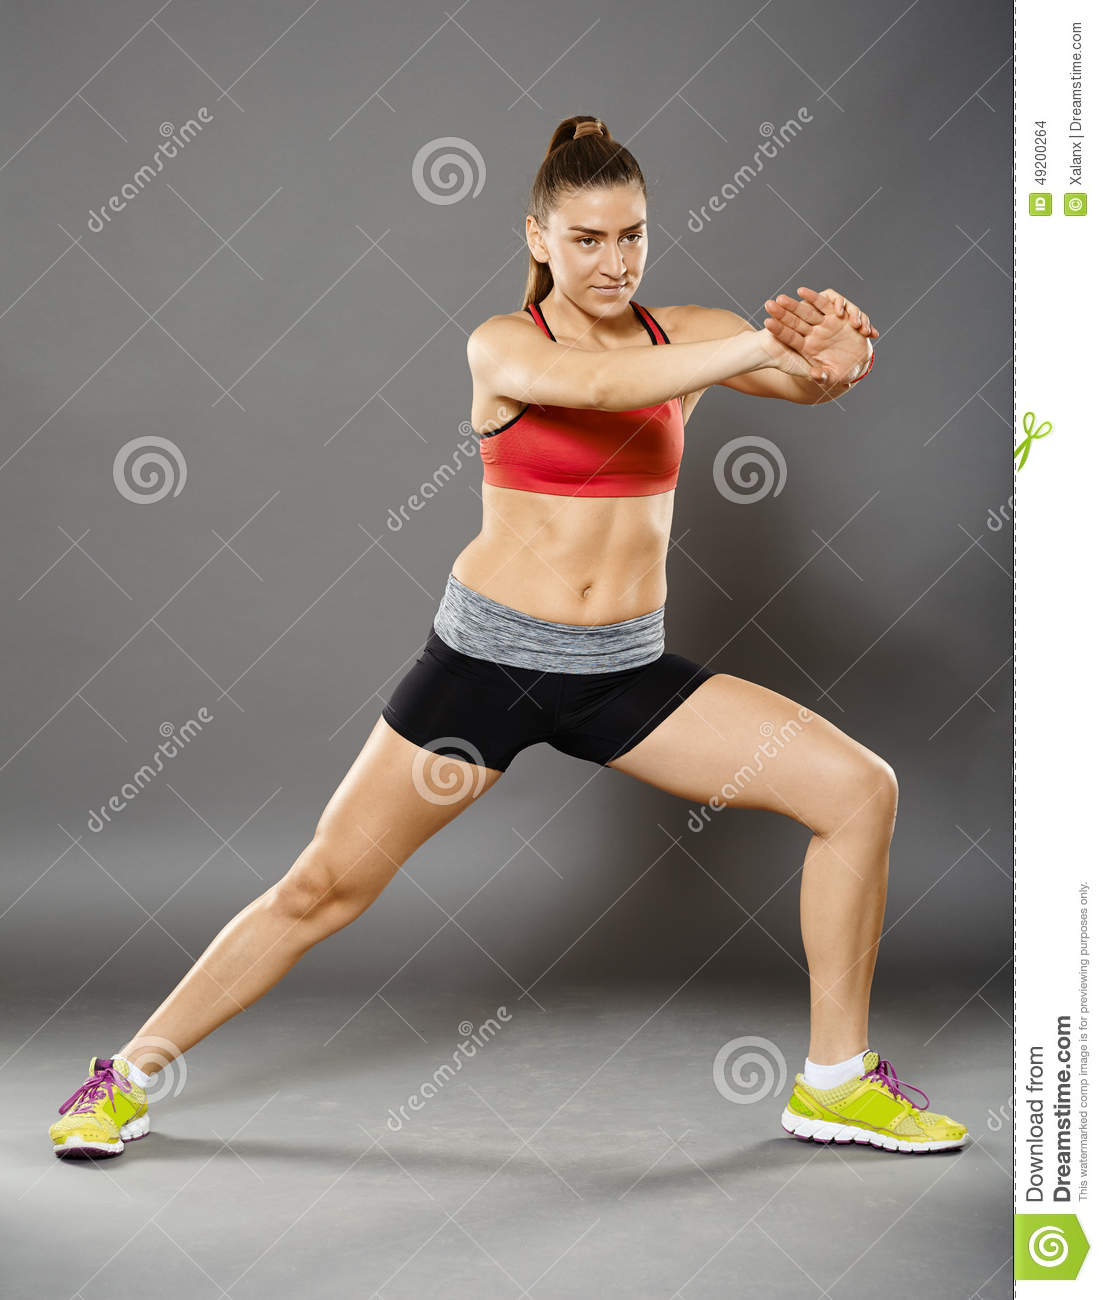 Fitness lady stretching stock photo image of girl for Lady fitness